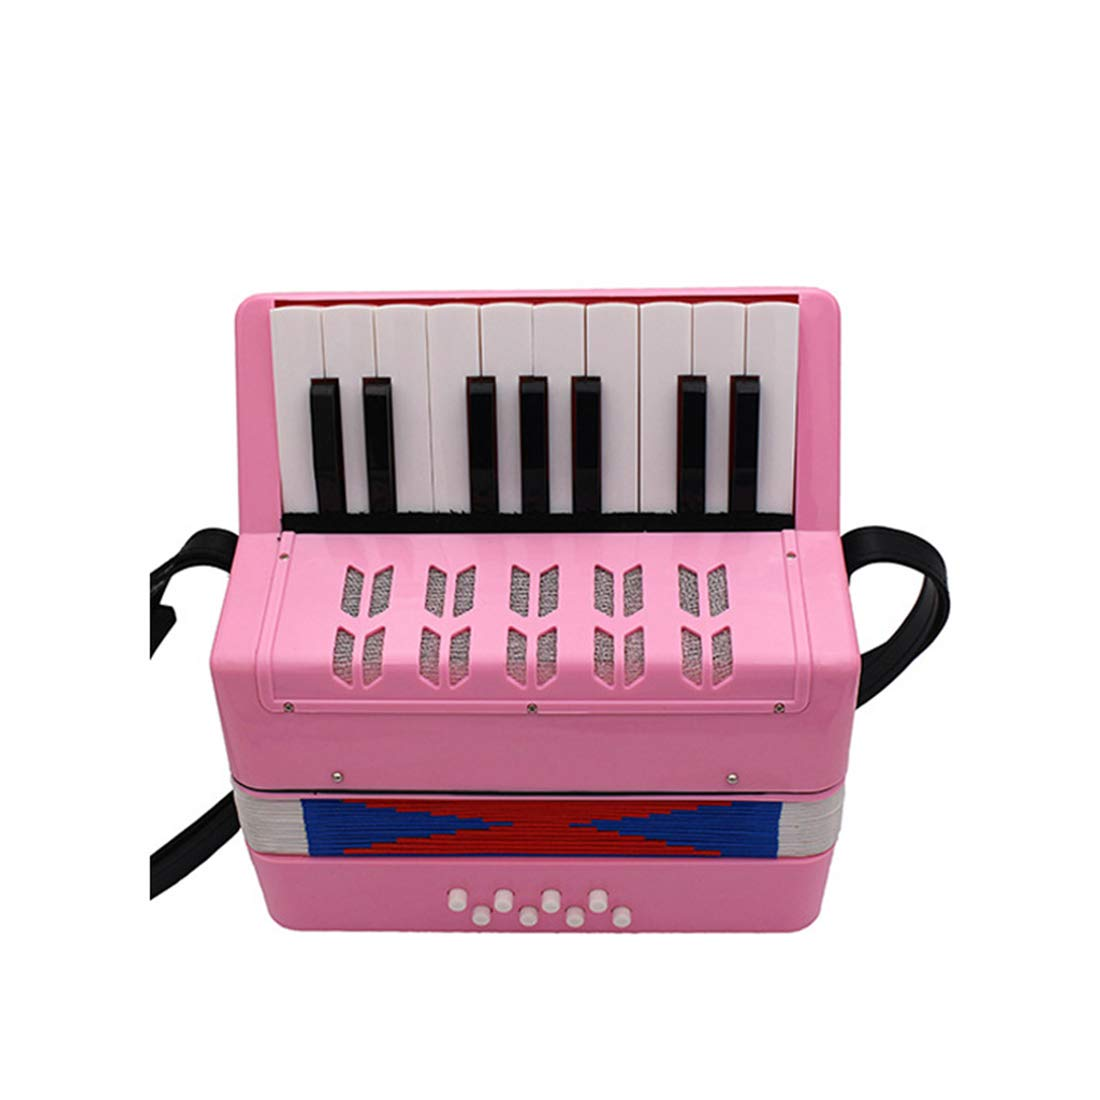 SFQNPA Red Toy Accordion Instrument Mini Small 17-Key 8 Bass Accordion Educational Musical Instrument Toy for Kids Children Amateur Beginner, Pink